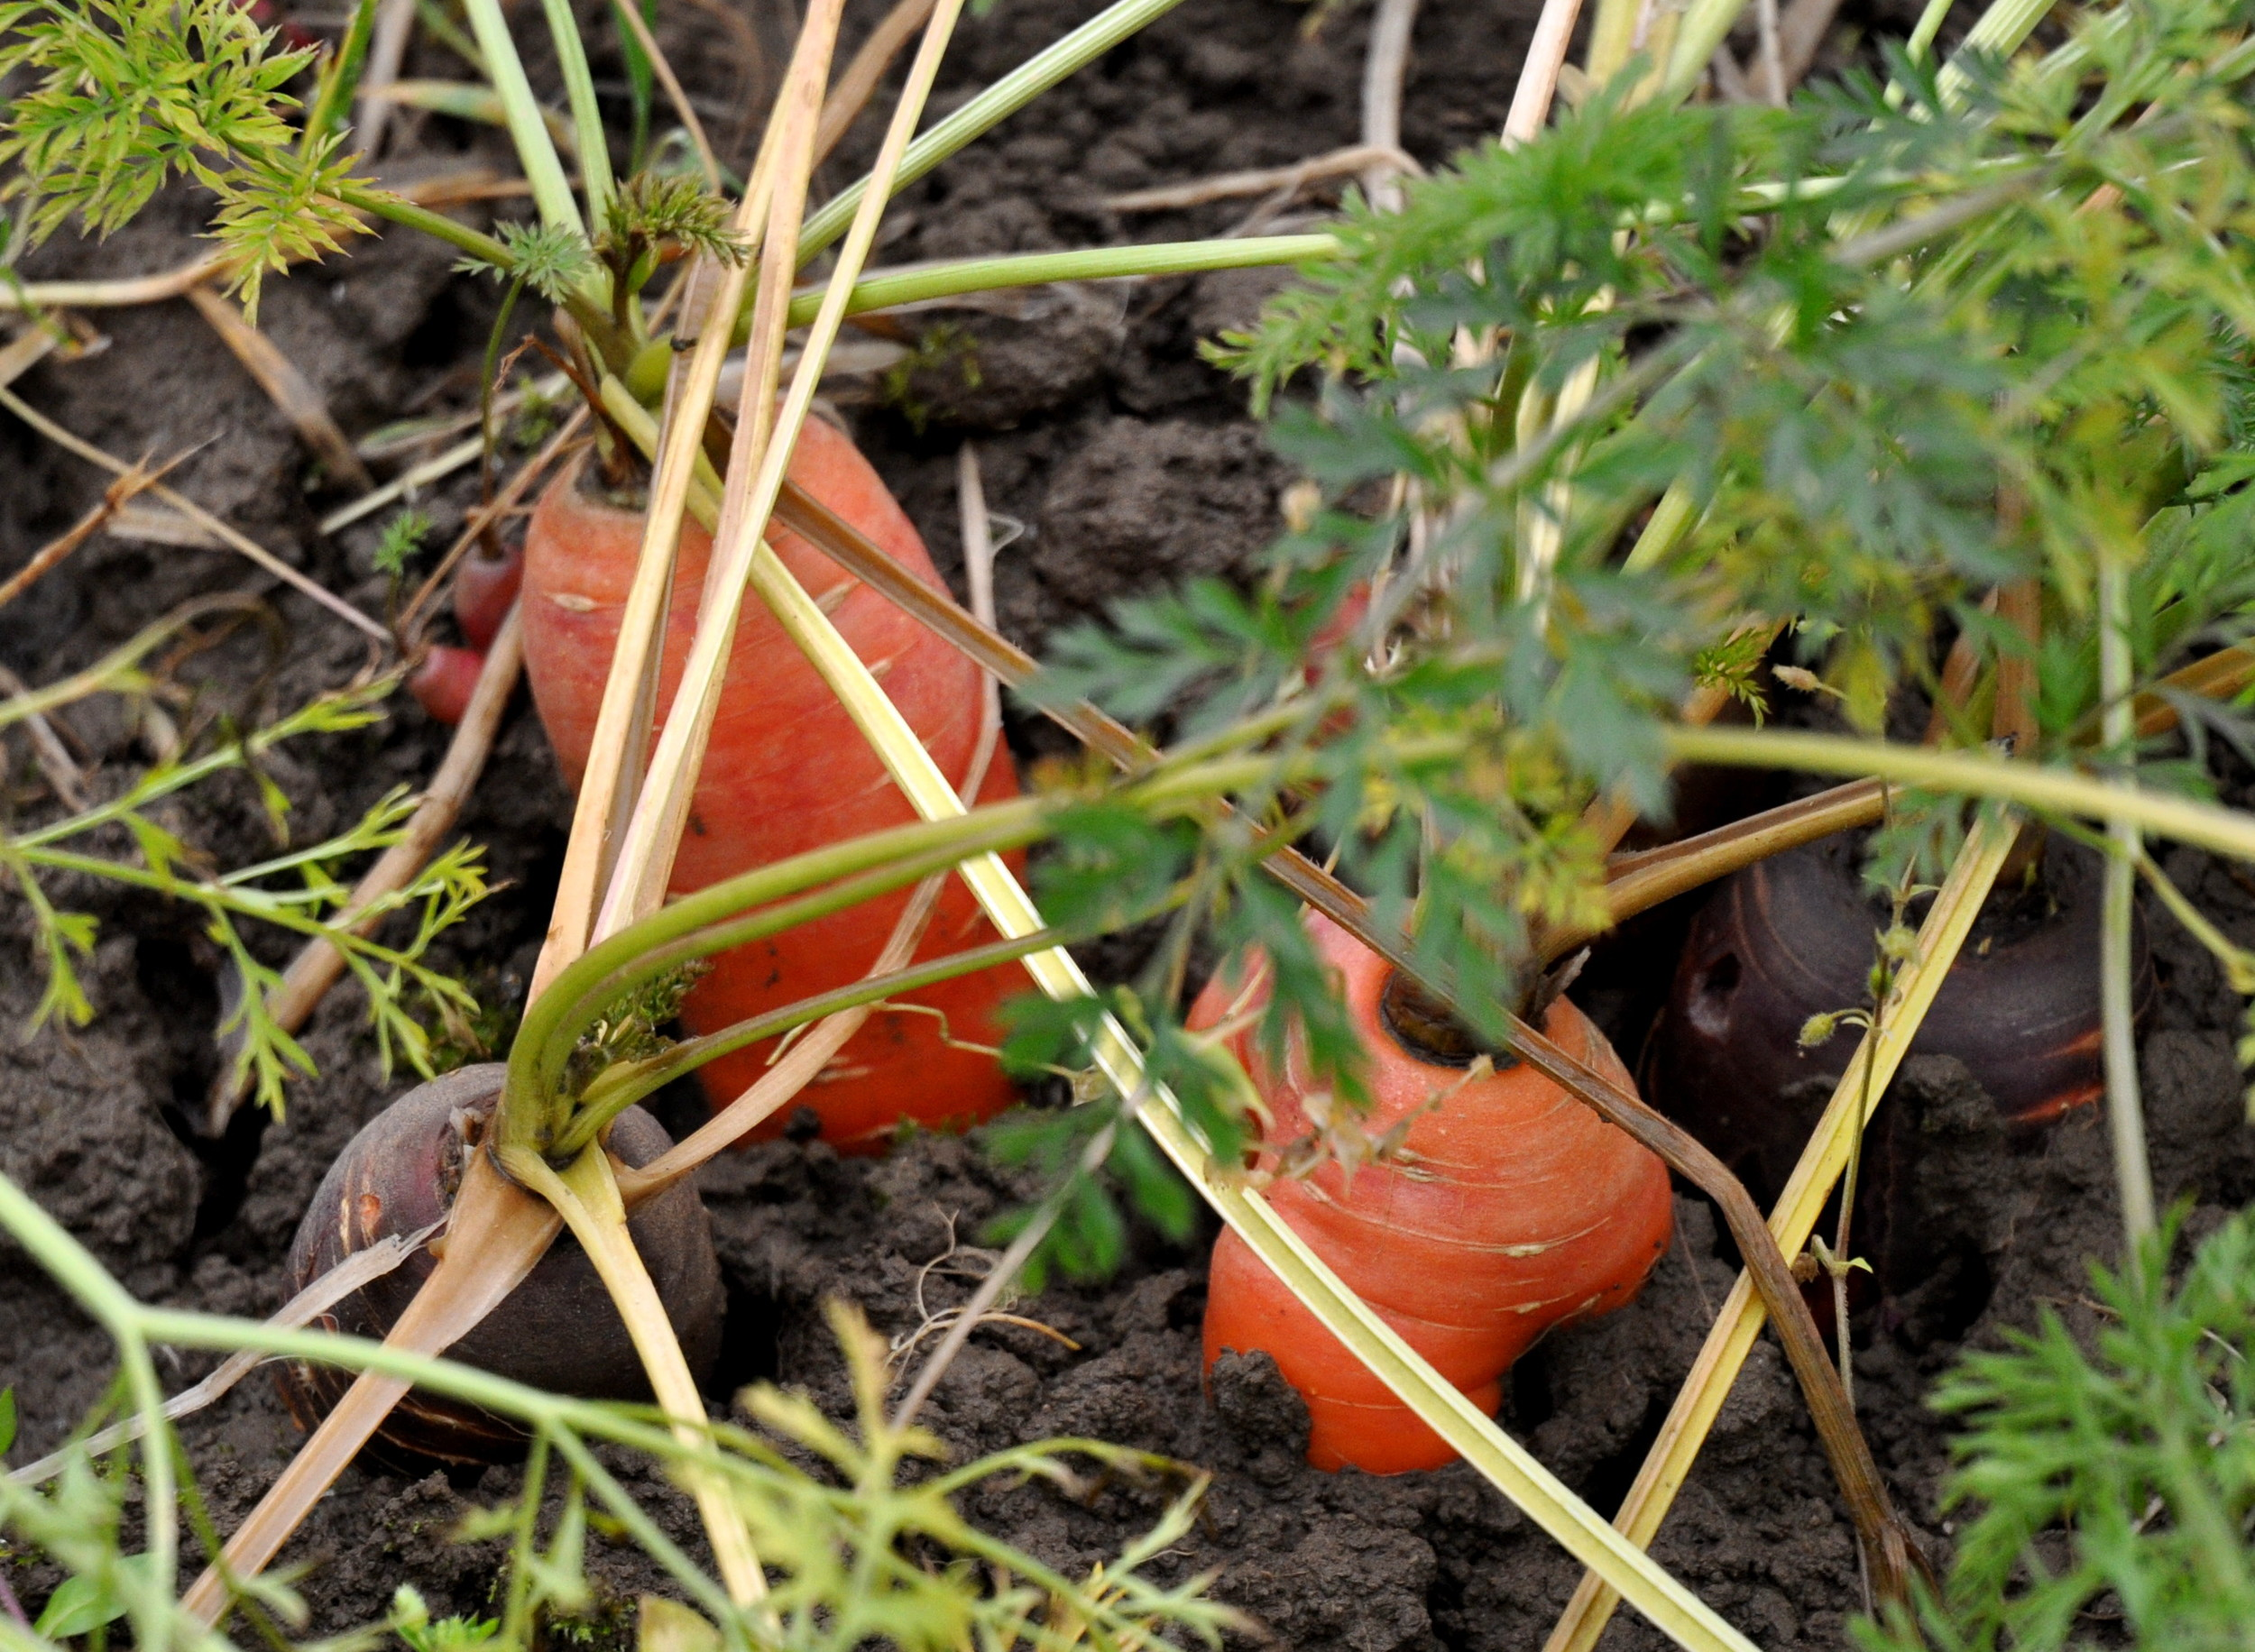 Carrots in the field at Oxbow Farm. Photo copyright 2012 by Zachary D. Lyons.